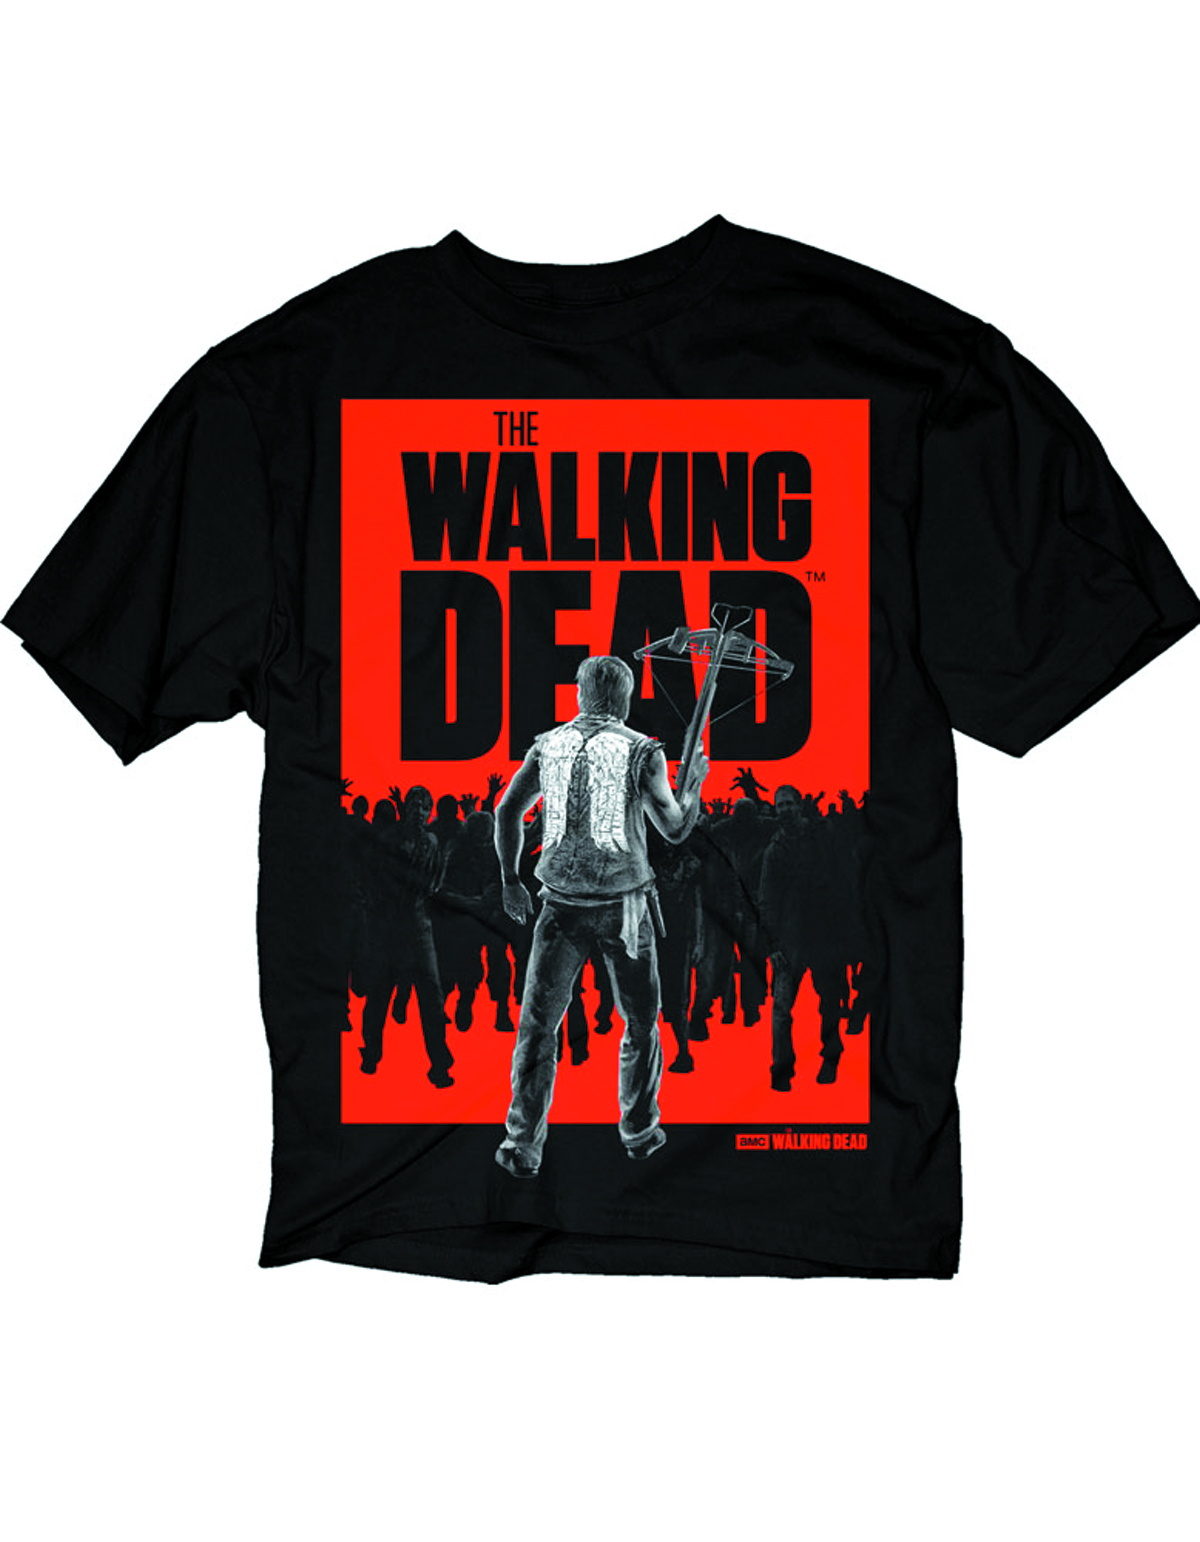 WALKING DEAD DARYL WALKER PX BLK T/S XXL